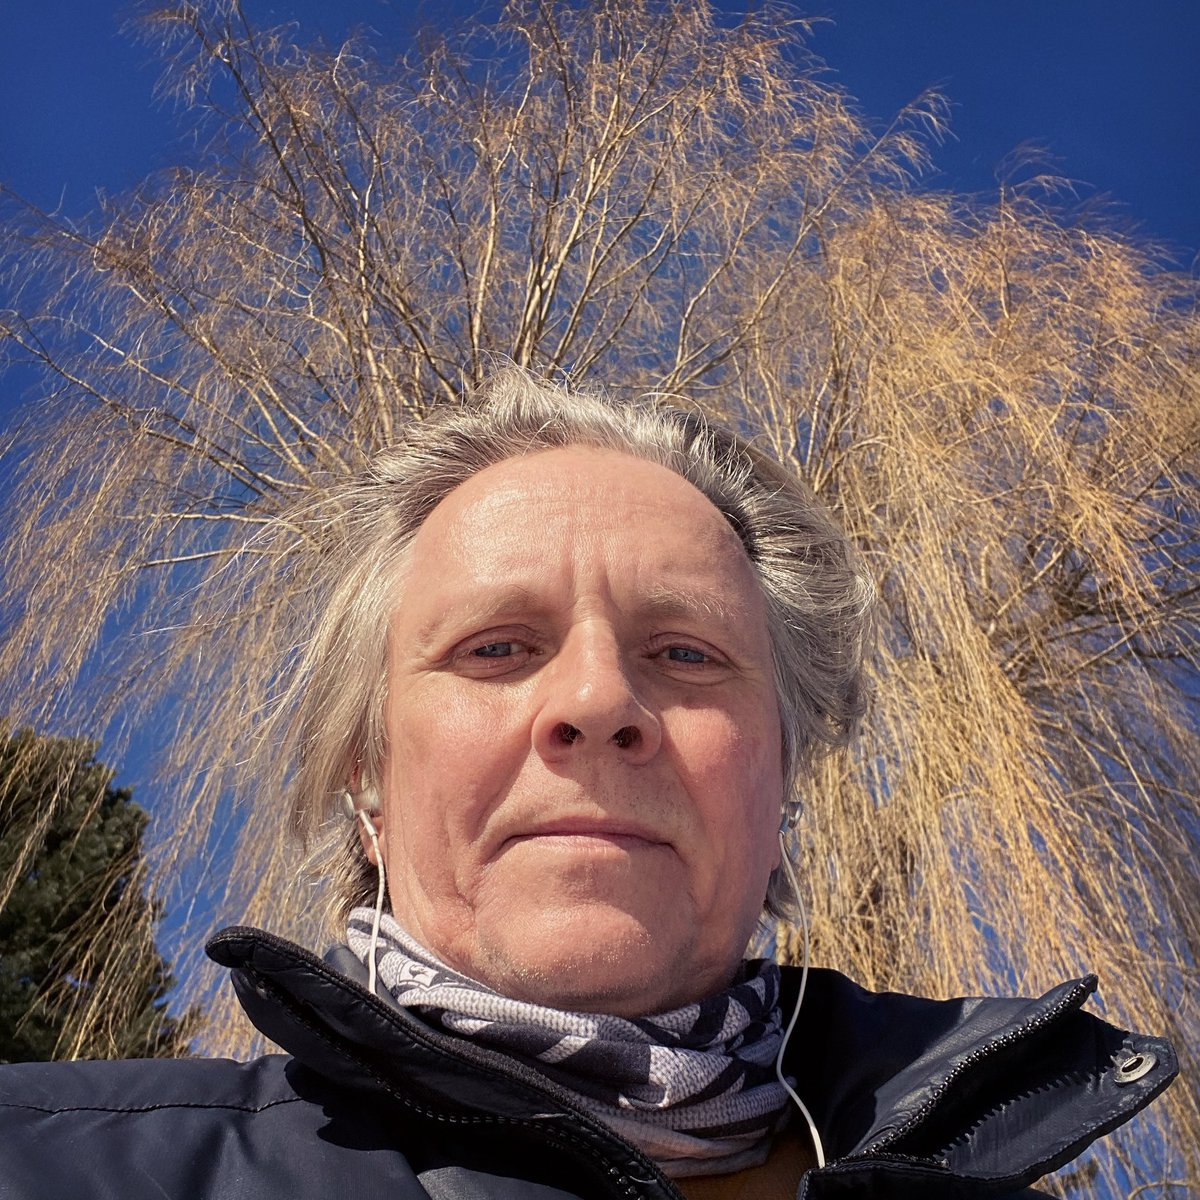 Under #bluesky and #willow